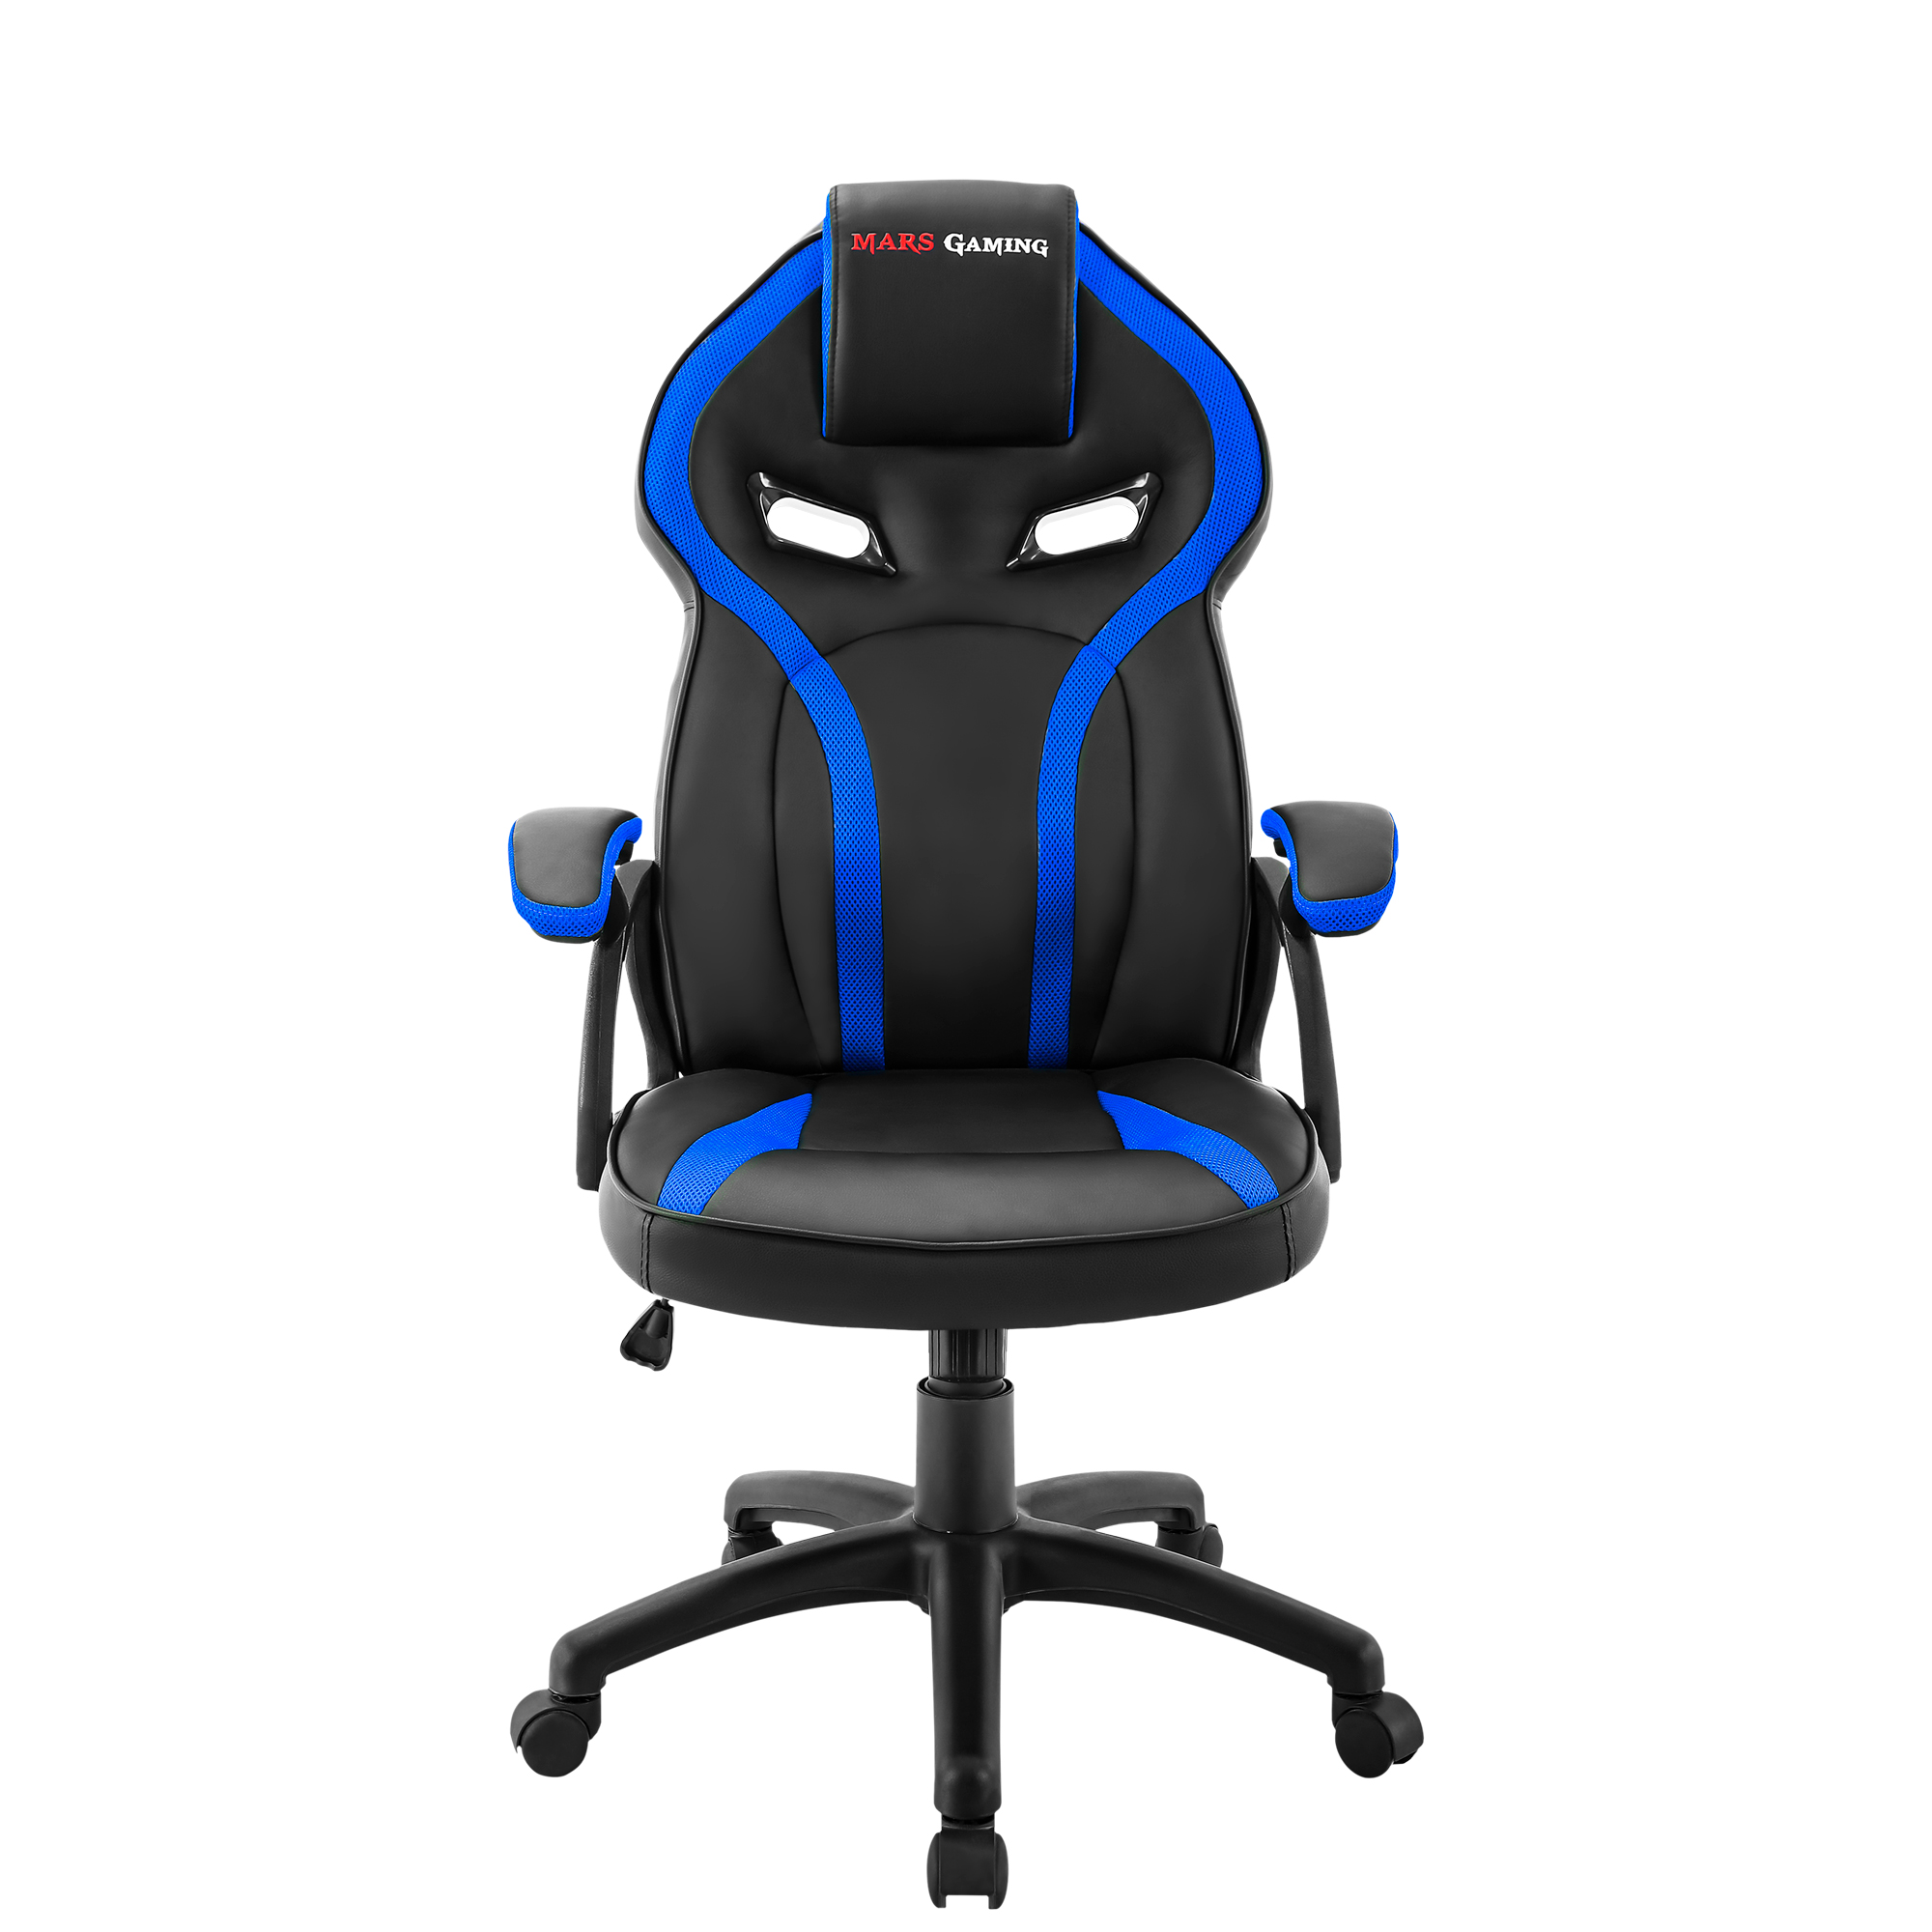 Mars Gaming MGC118, Chair Gaming Ergonomic, Dimmable, PU Coating, Blue